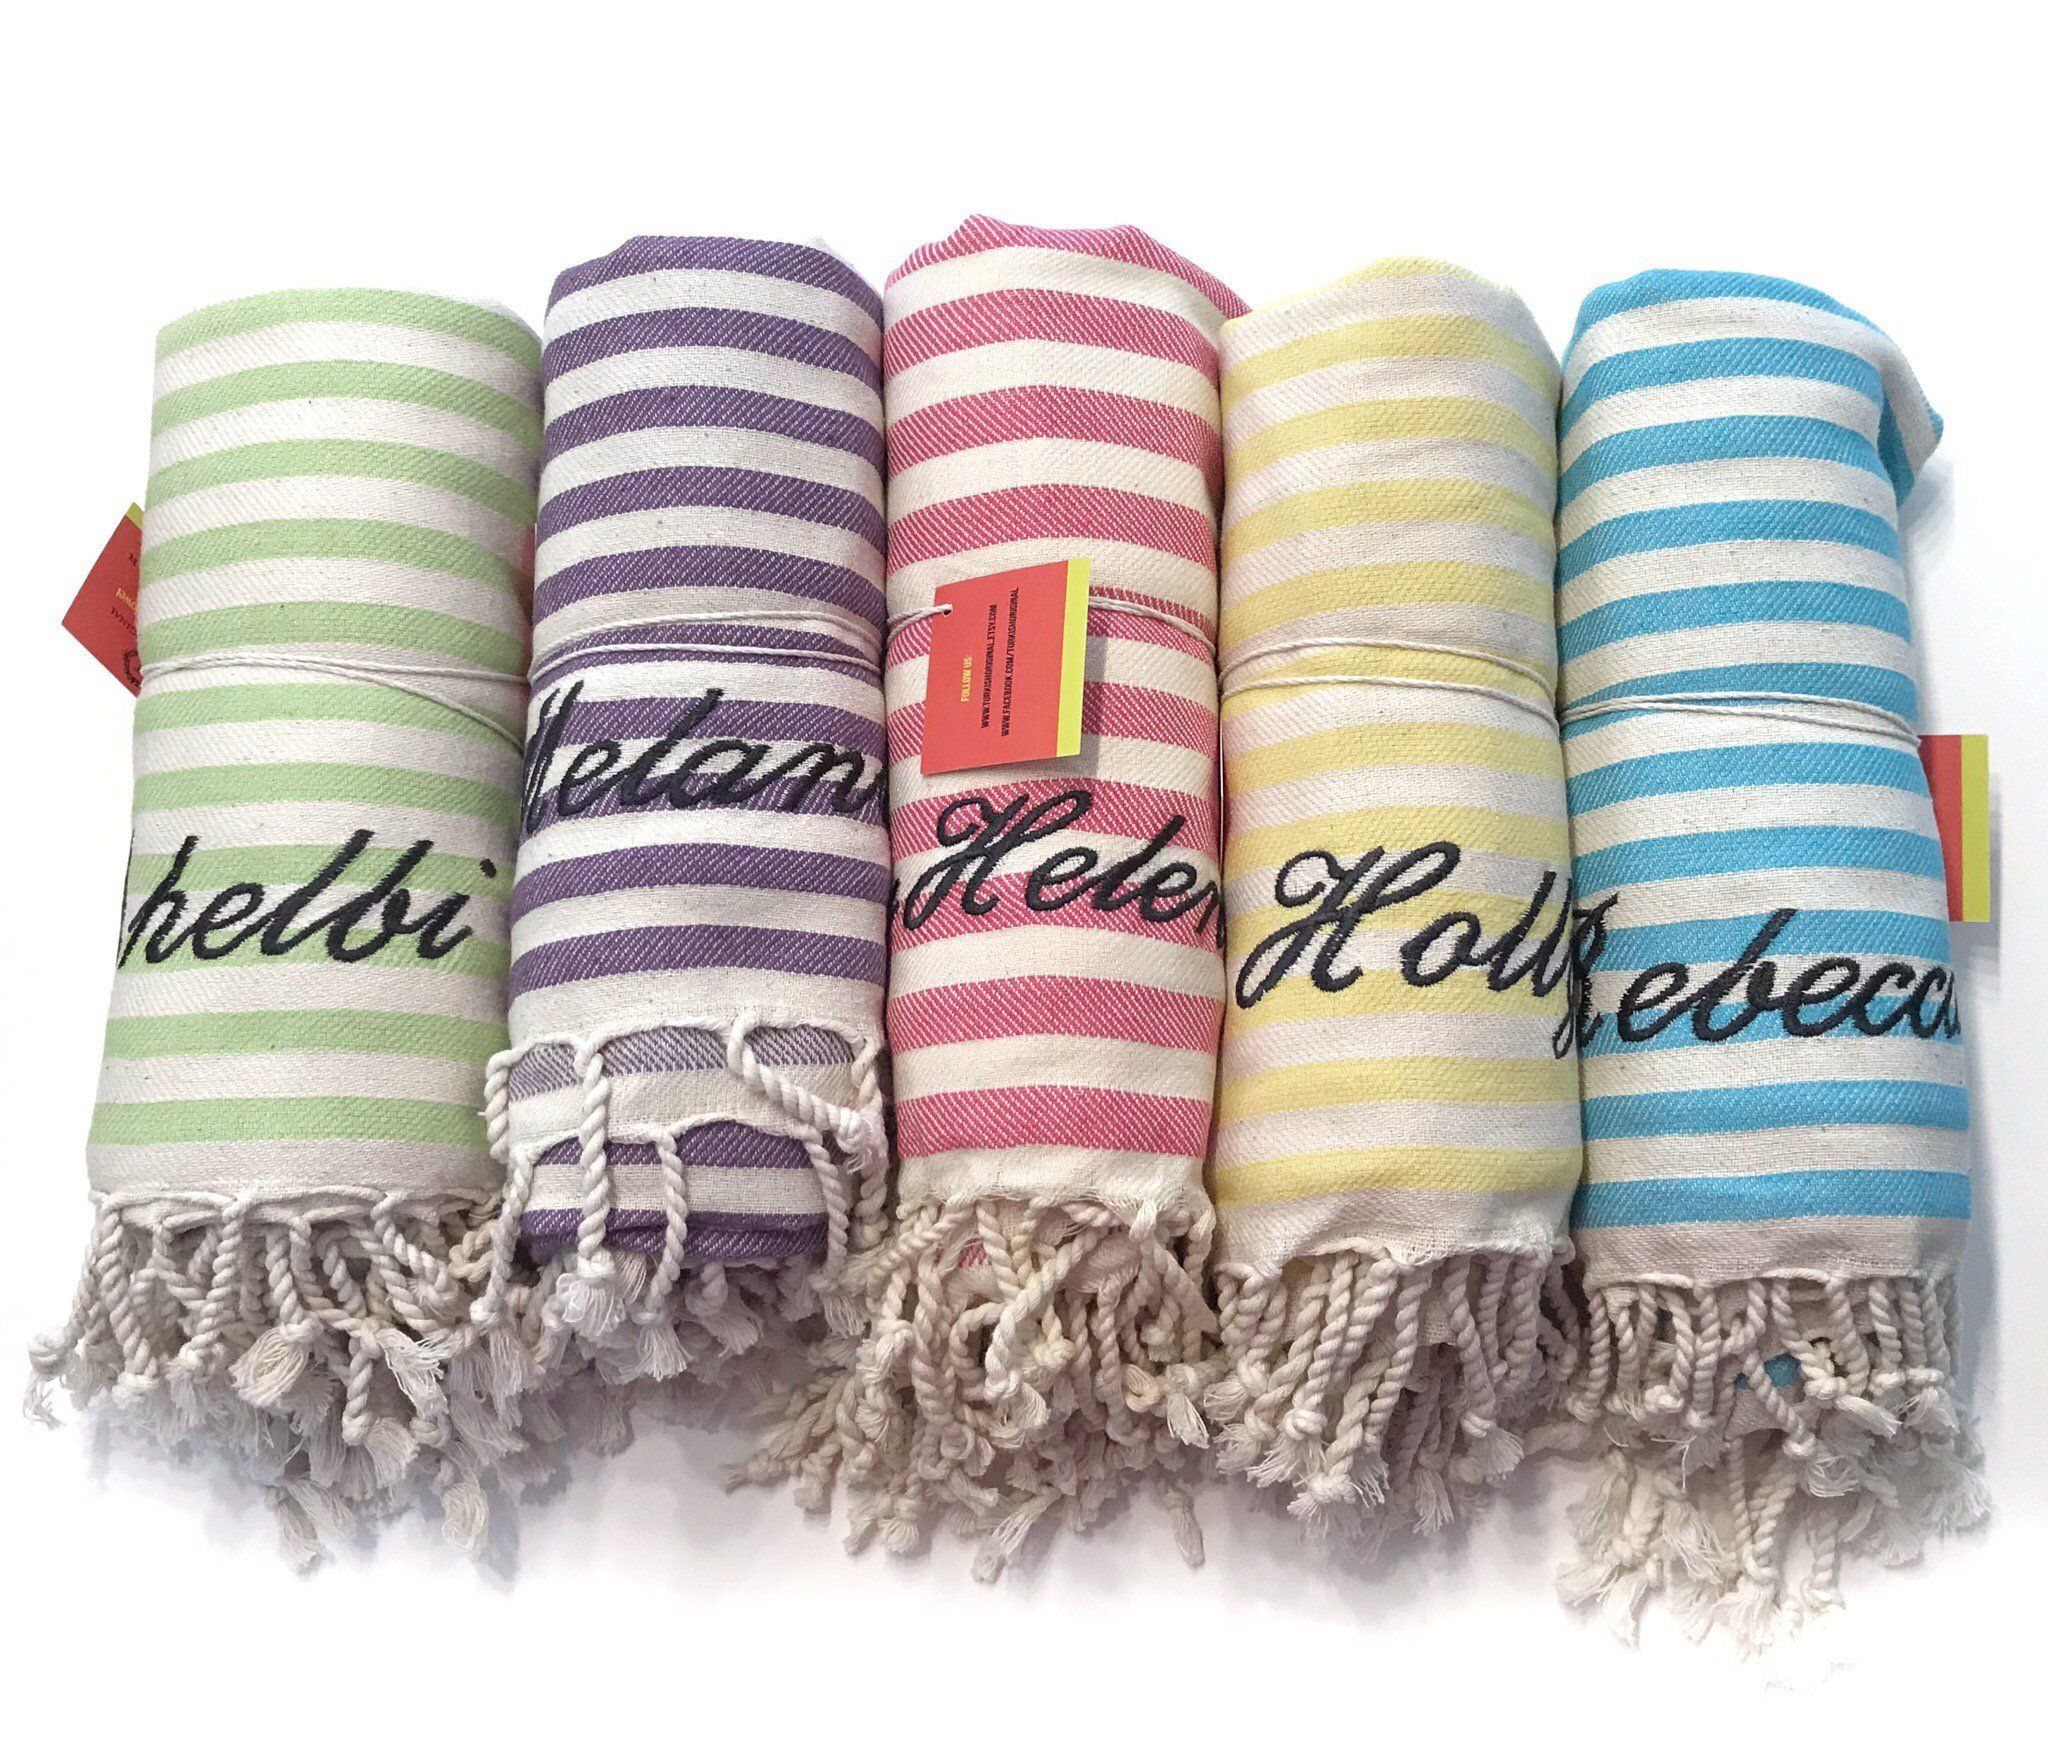 5 Rainbow Bridesmaids Gifts Large Beach Towels Set Of 5 Large